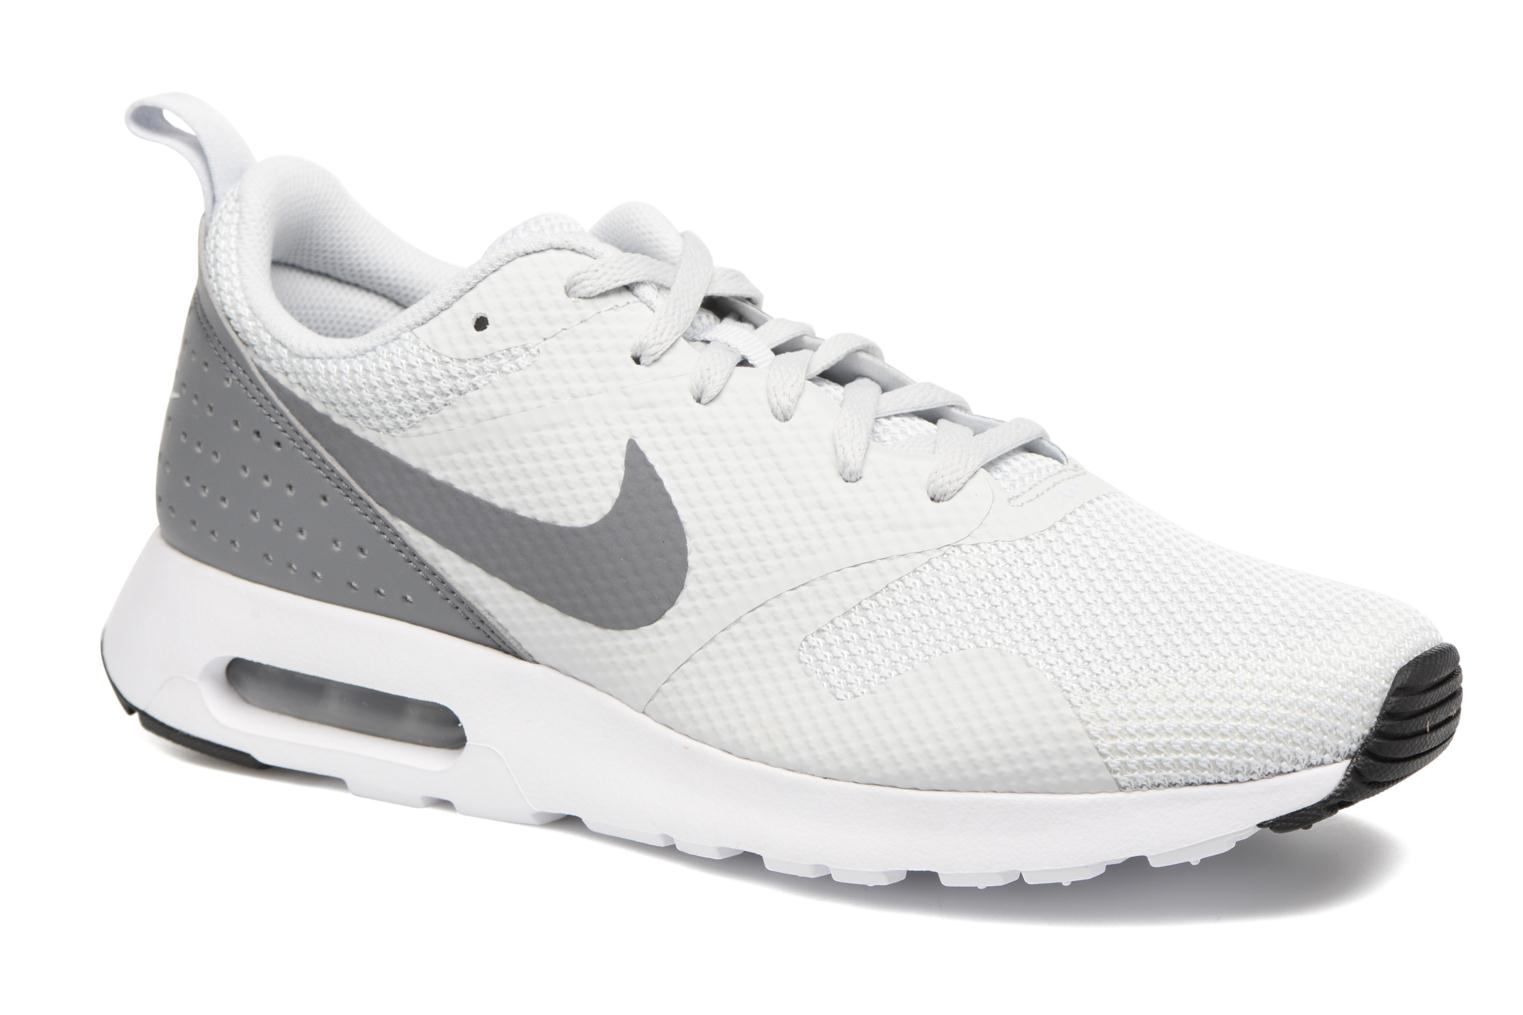 Nike Air Max Tavas Pure Platinum/Cool Grey-Black-White